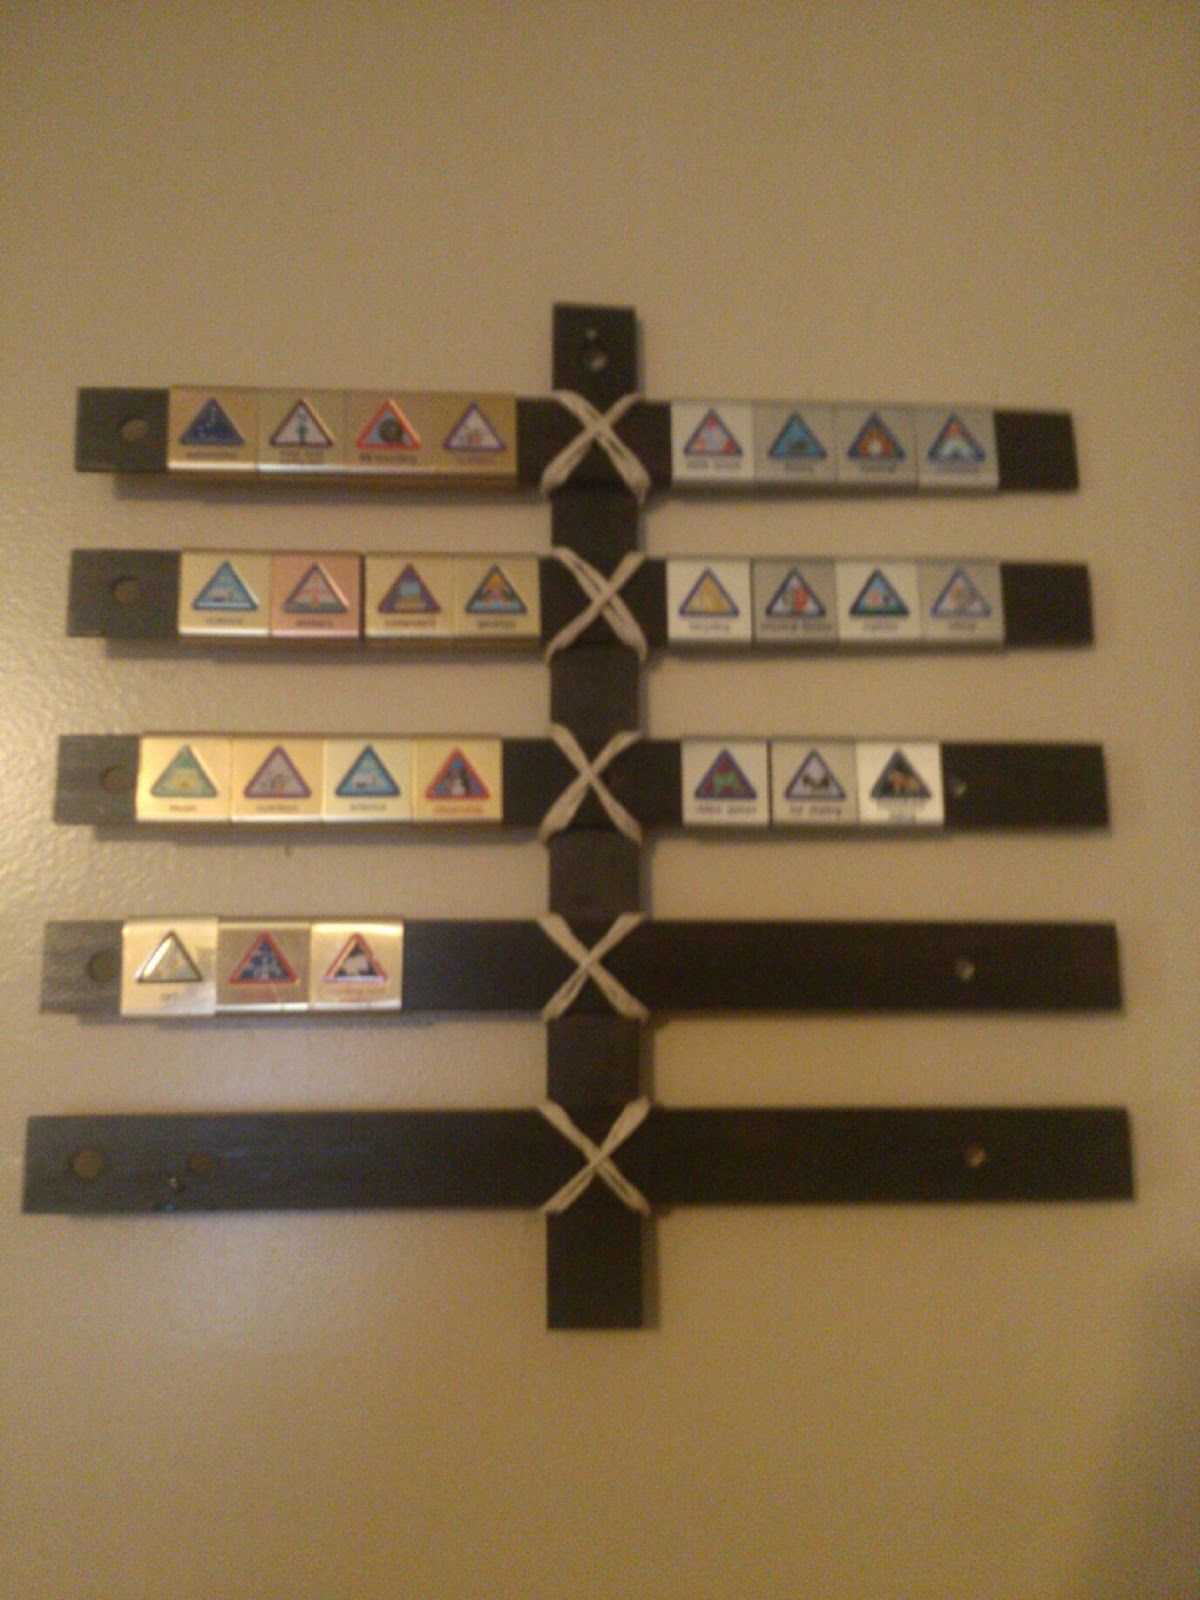 Make A Cub Scout Belt Loop Display For 1 50